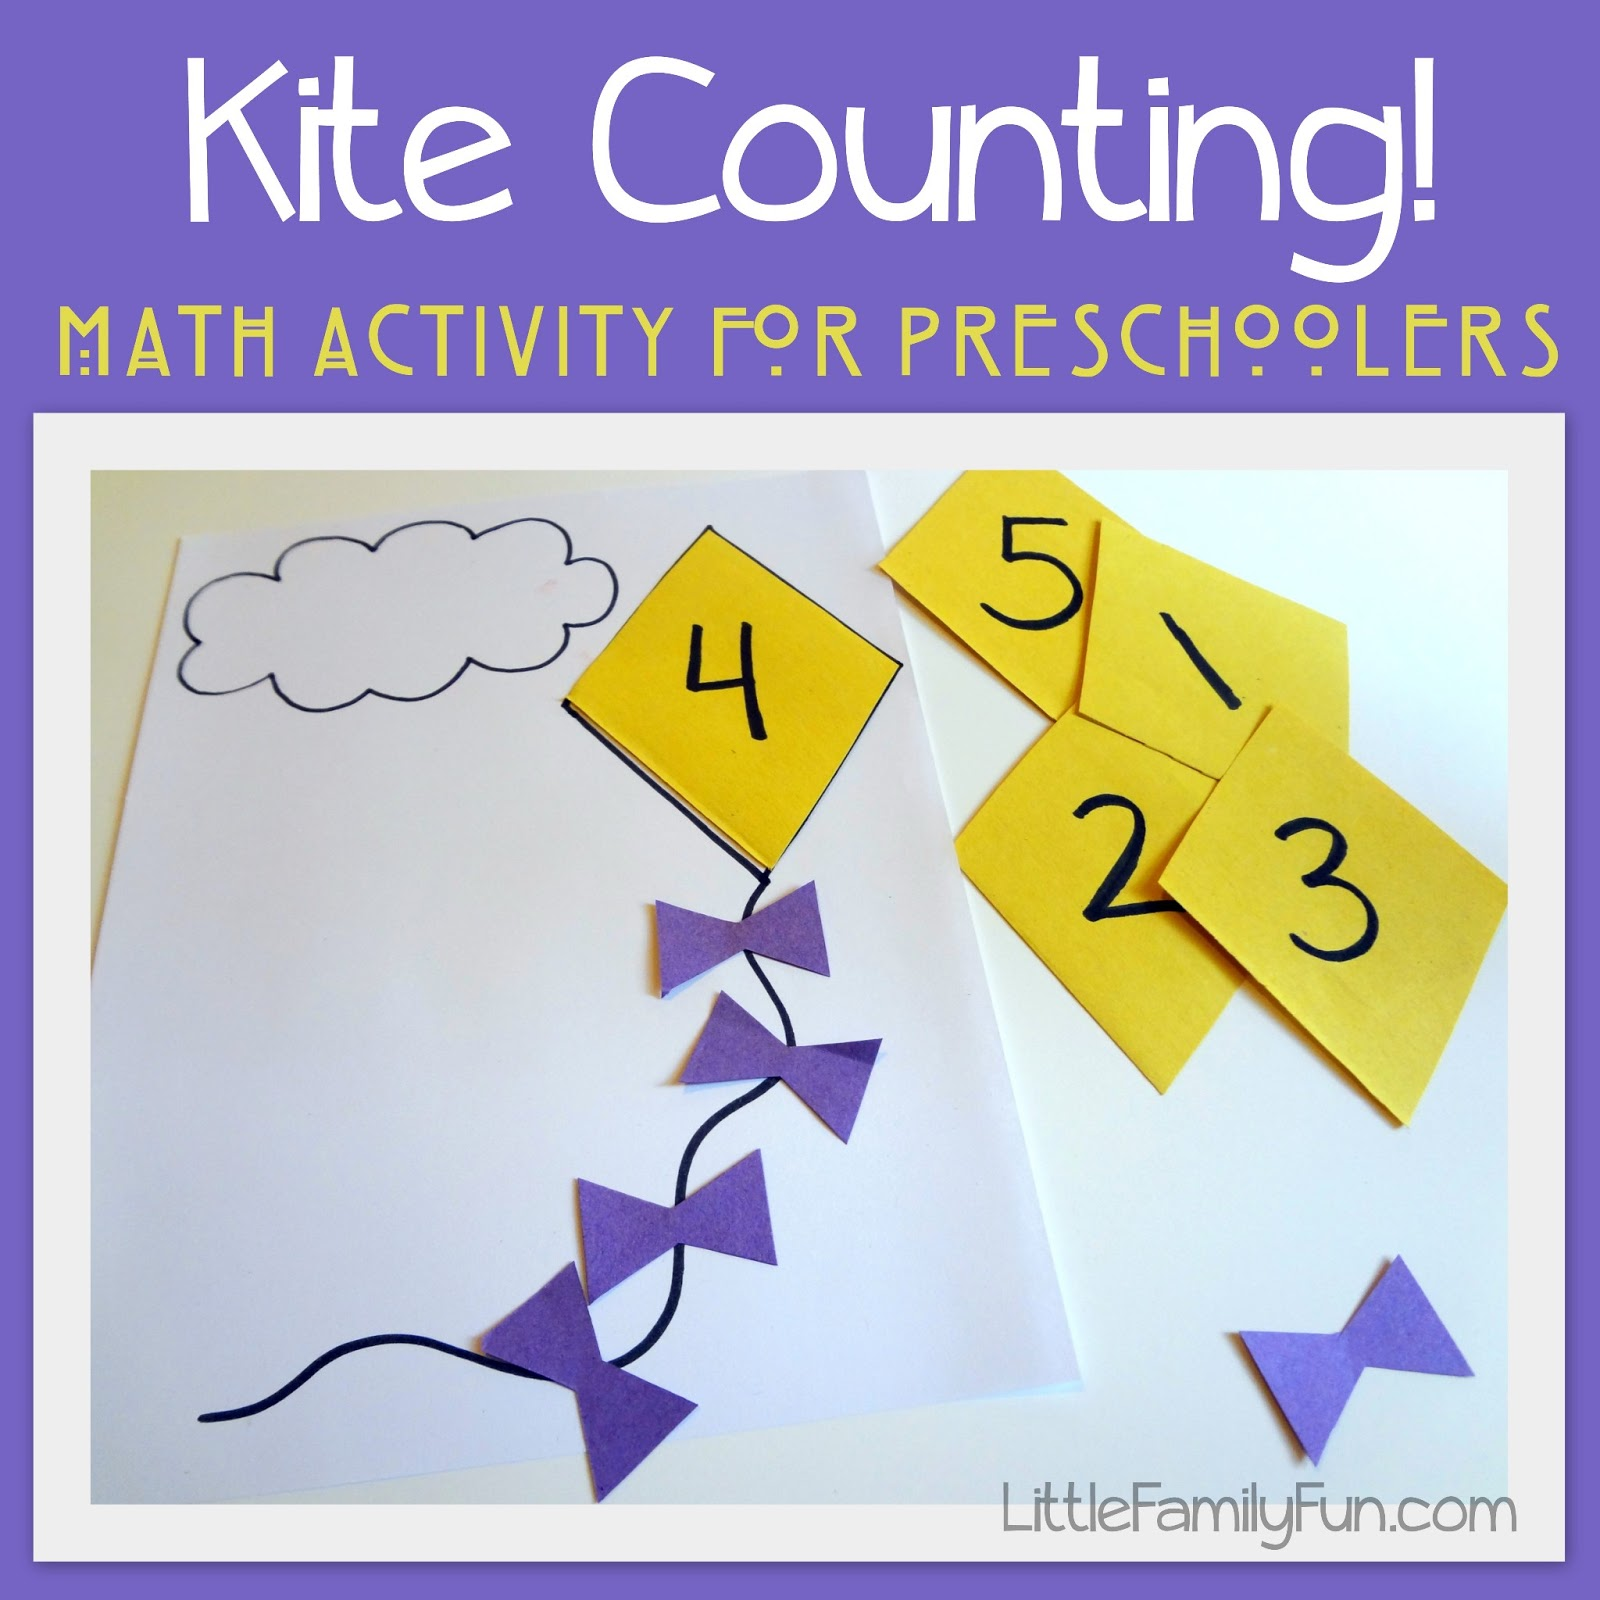 Kite Activities for Preschoolers